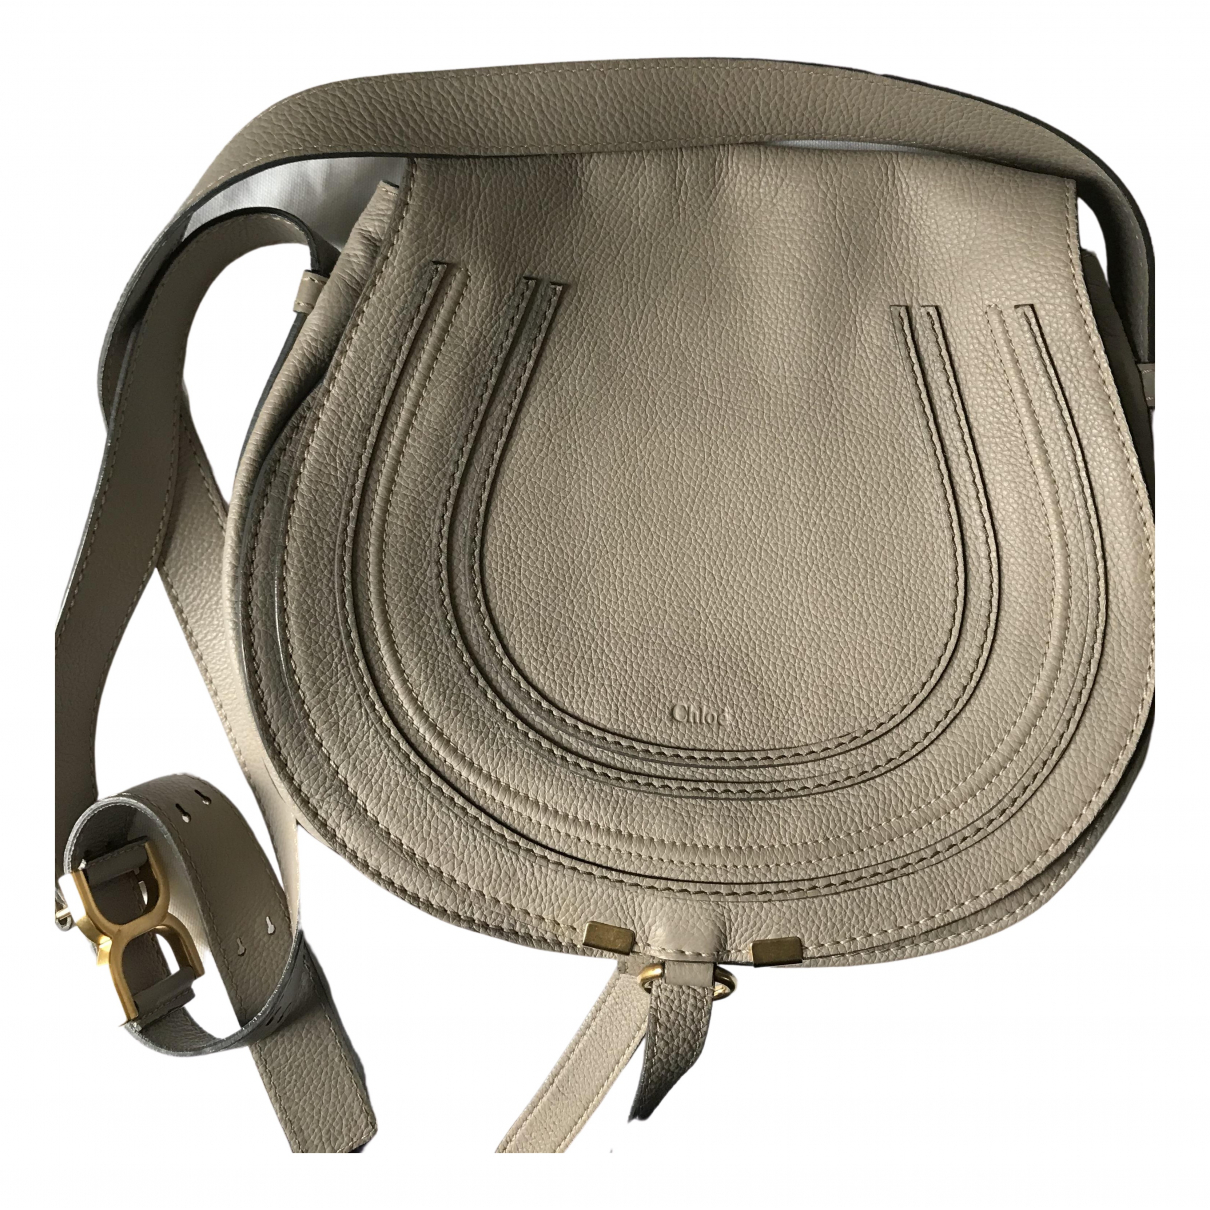 Chloé Marcie Beige Leather handbag for Women N